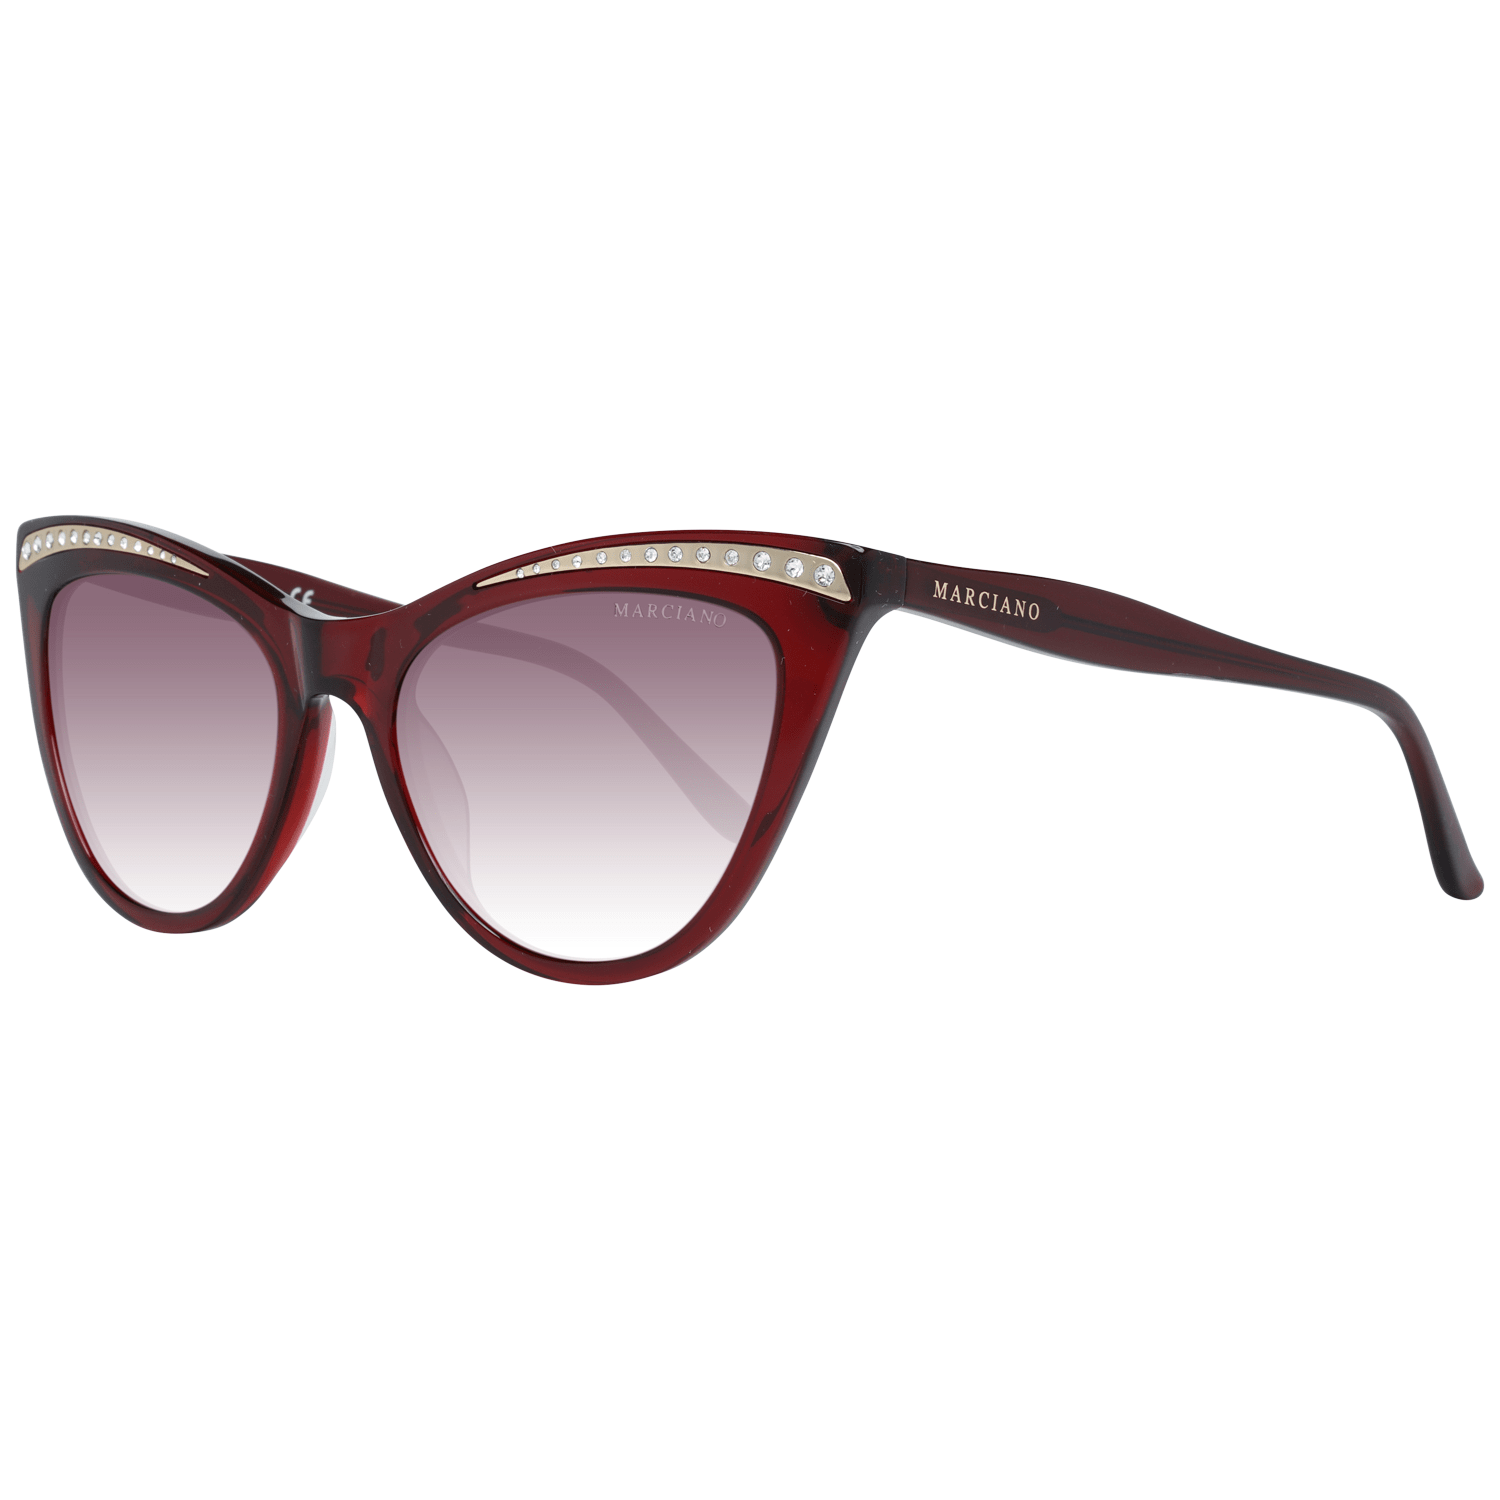 Guess By Marciano Women's Sunglasses Red GM0793 5366F